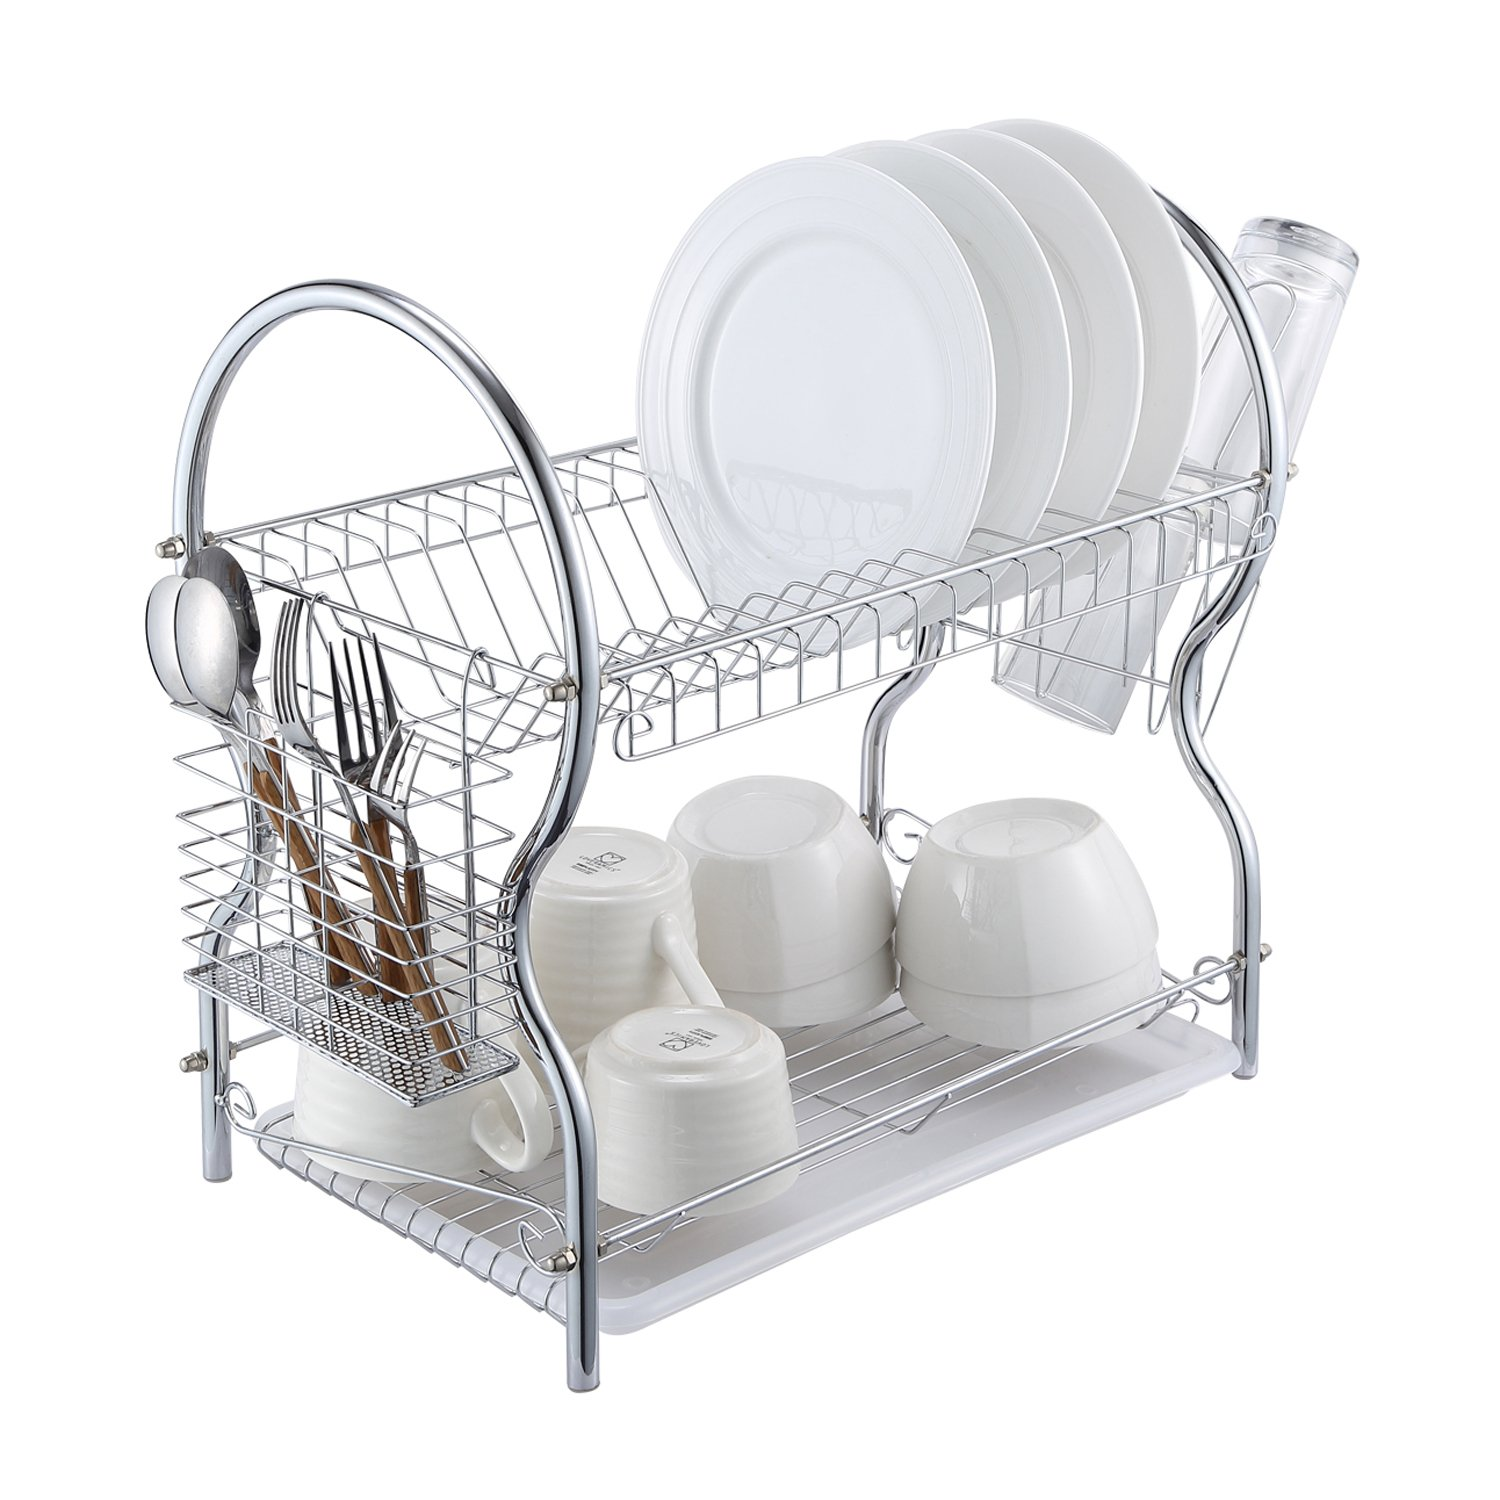 Dish Drying Rack - 2-Tier Chrome Kitchen Dish Drainer Rack Organizer with Drain Board ALHAKIN